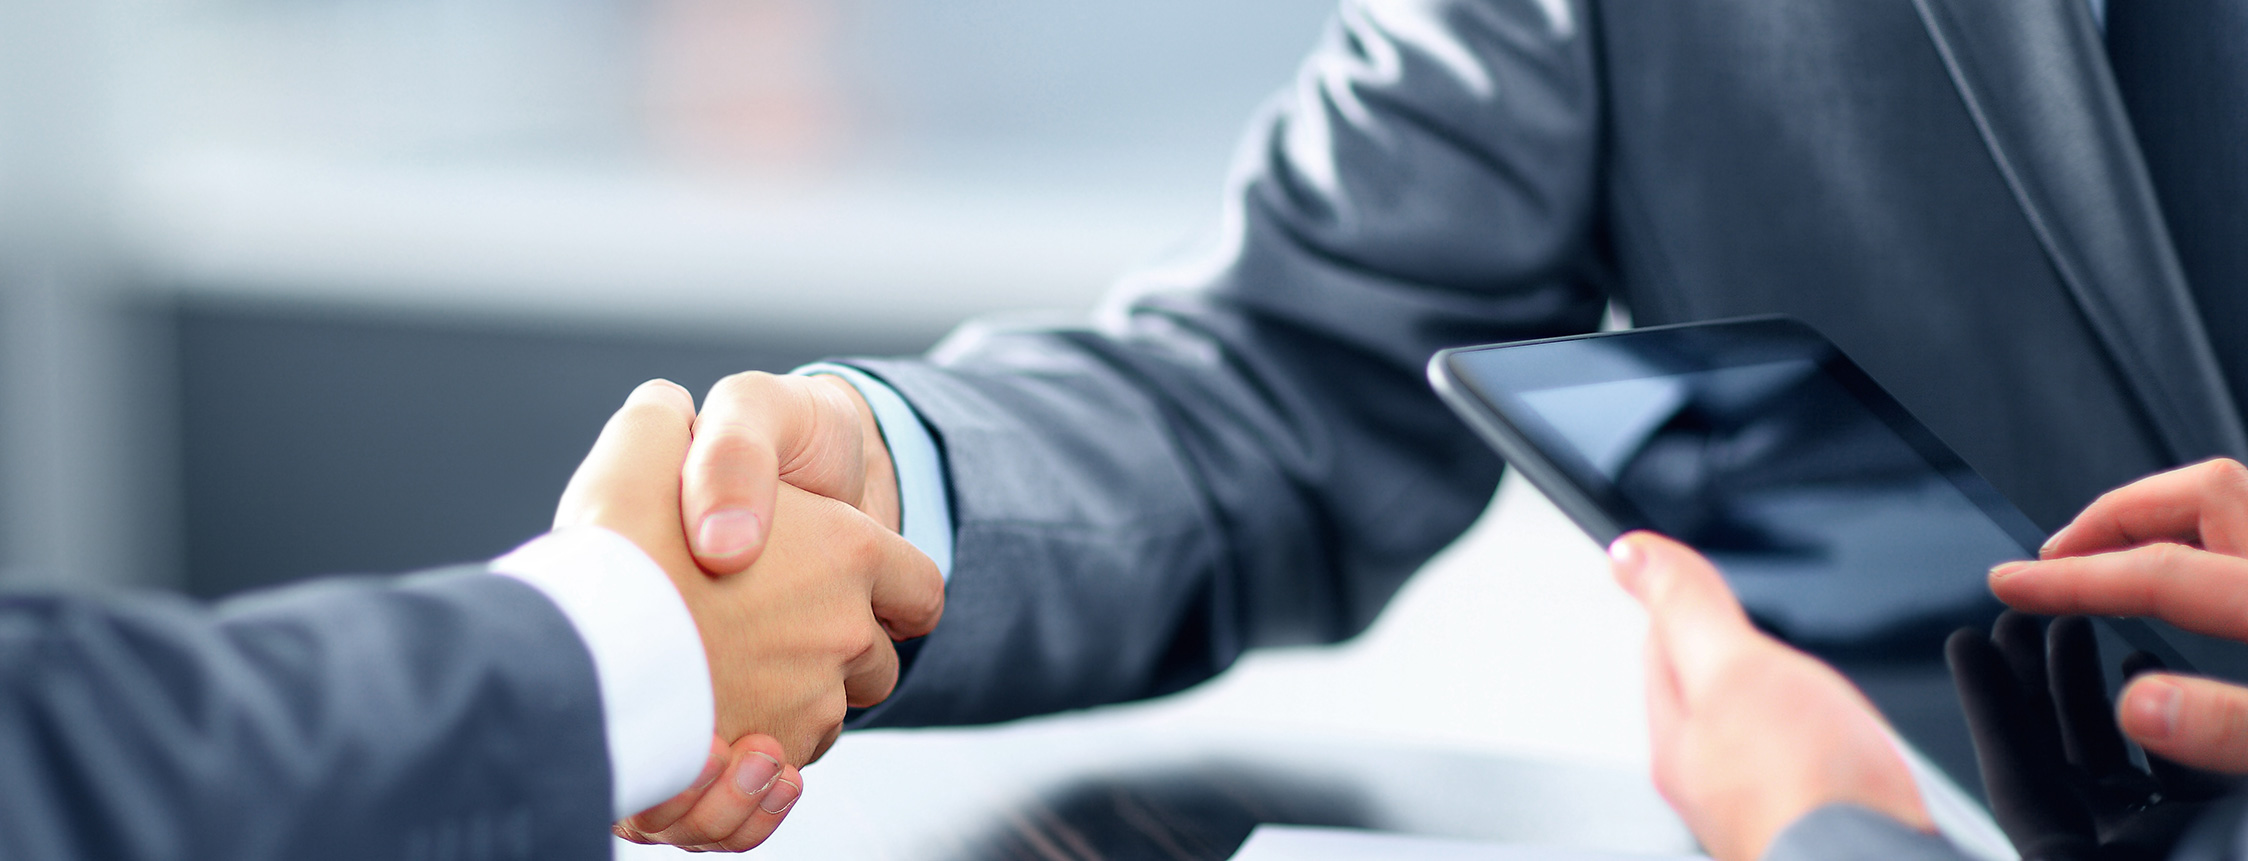 bigstock-Business-handshake-crop2